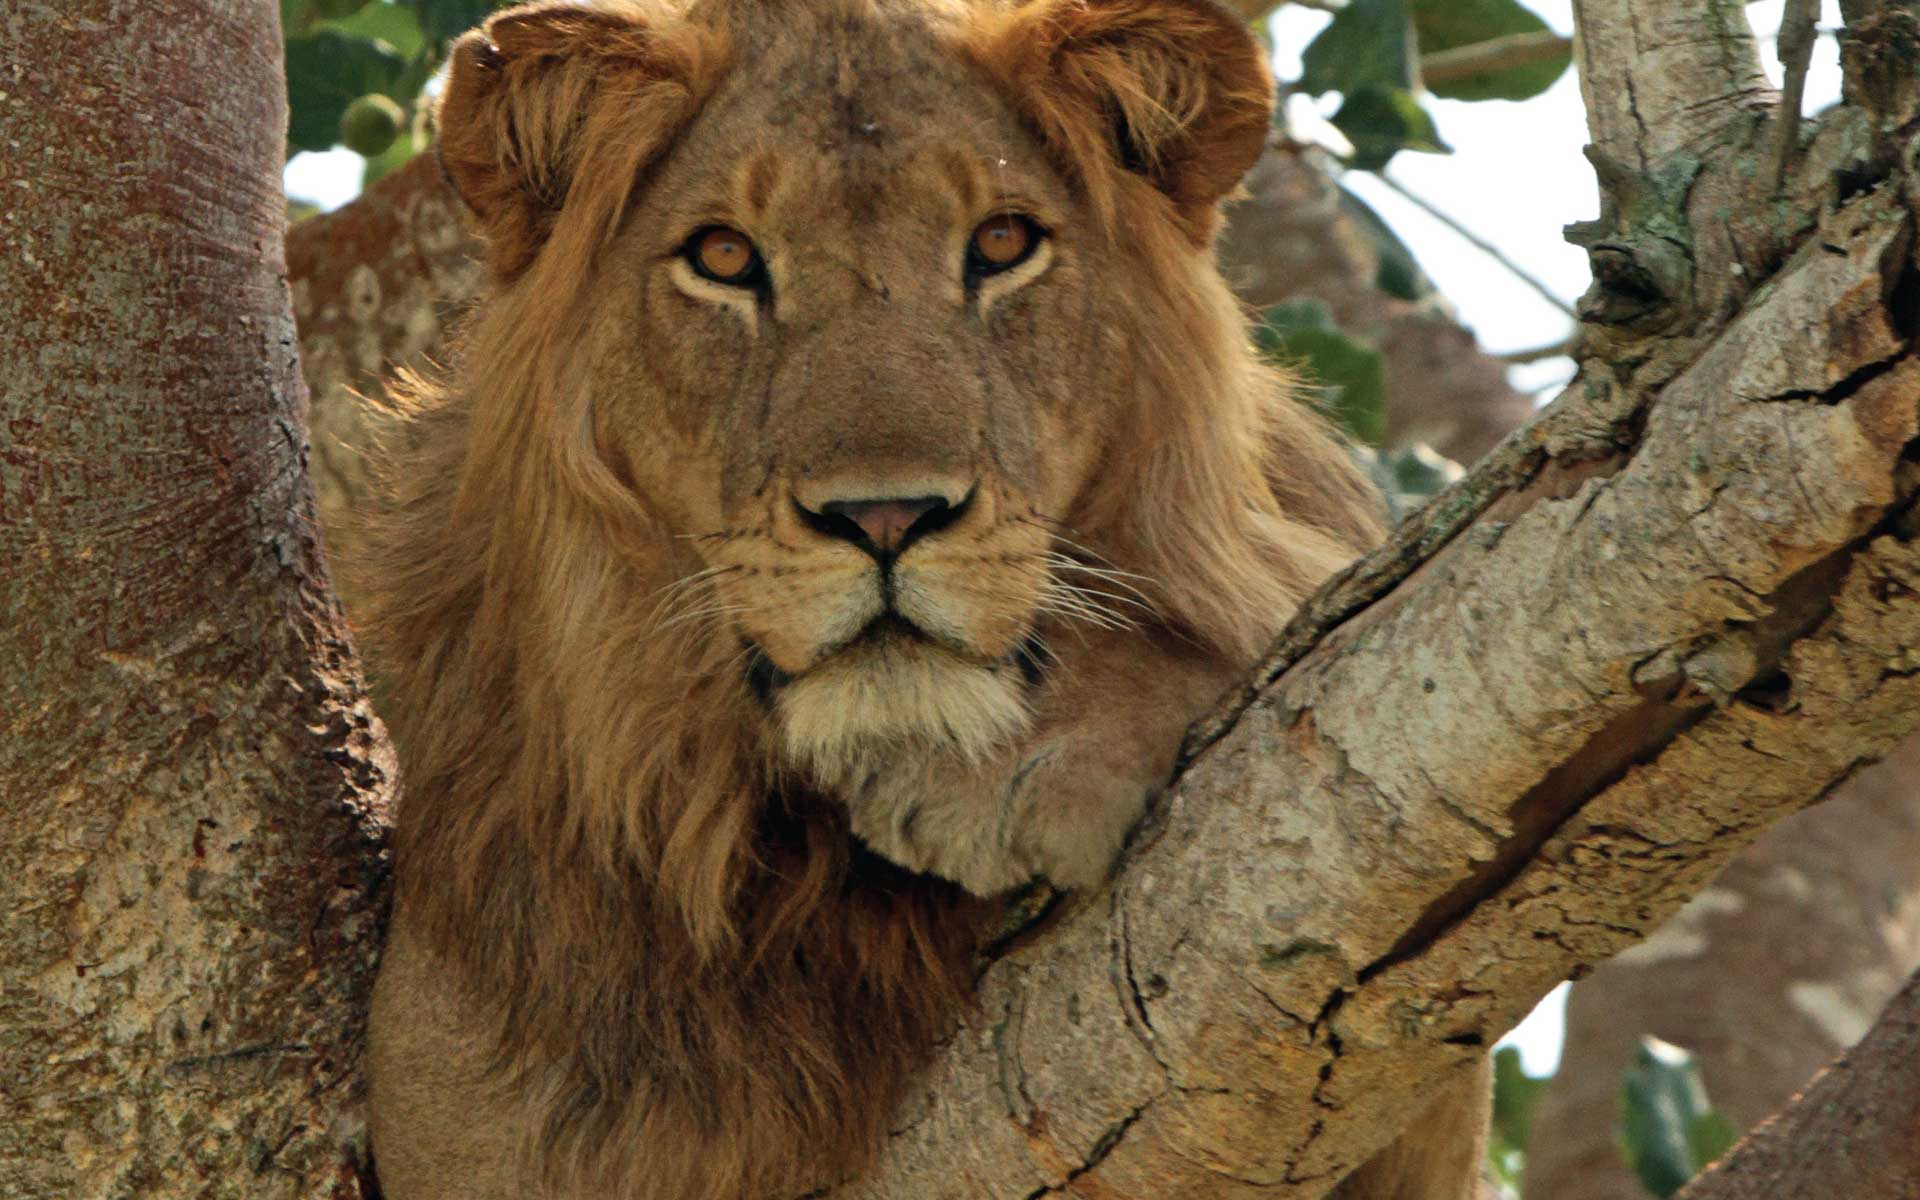 Best of Uganda Holiday Safari - Tree Climbing Lions of Ishasha